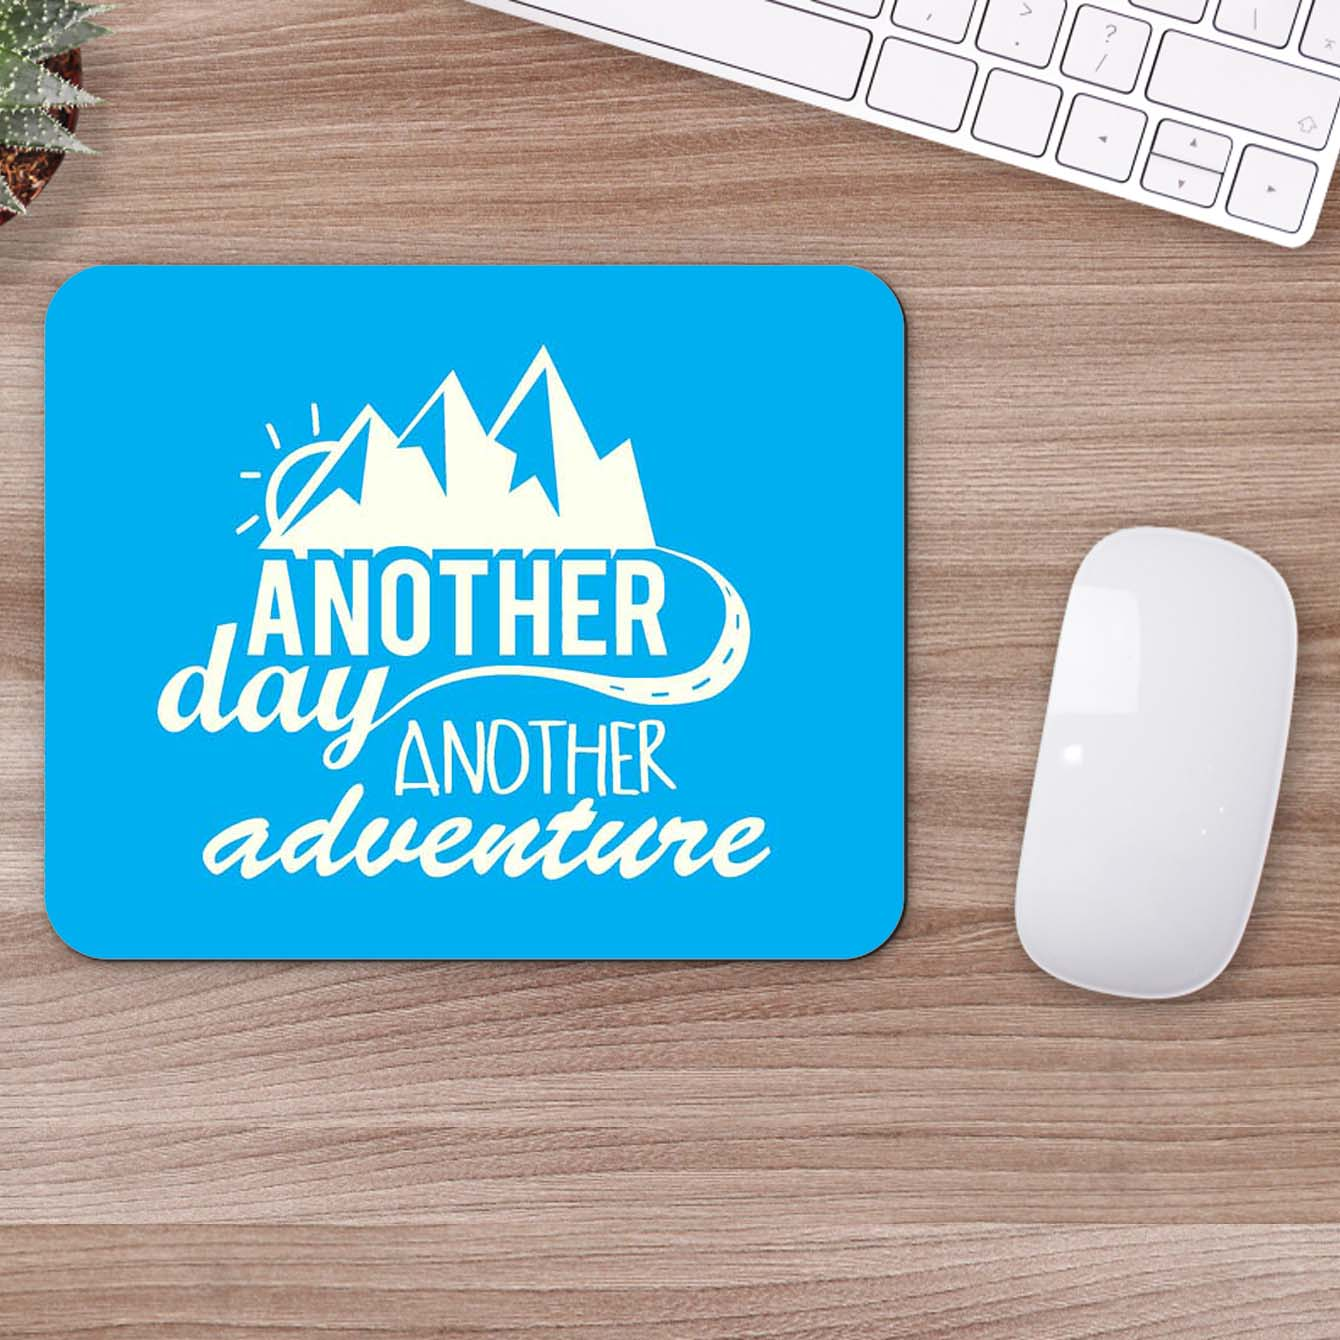 Buy Another Day Another Adventure Motivational Mouse Pads Online